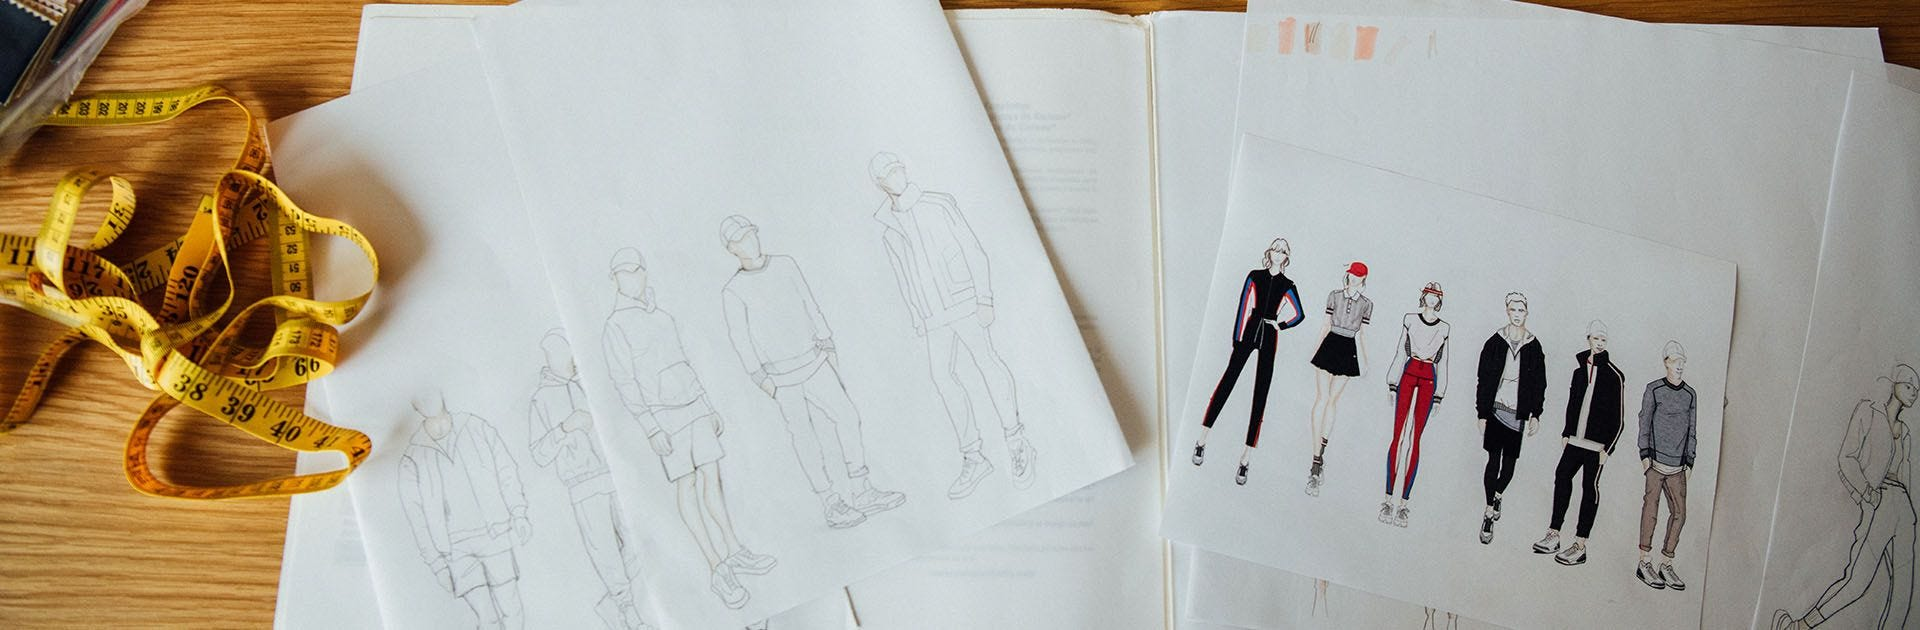 apparel design sketches and an a2000 glove